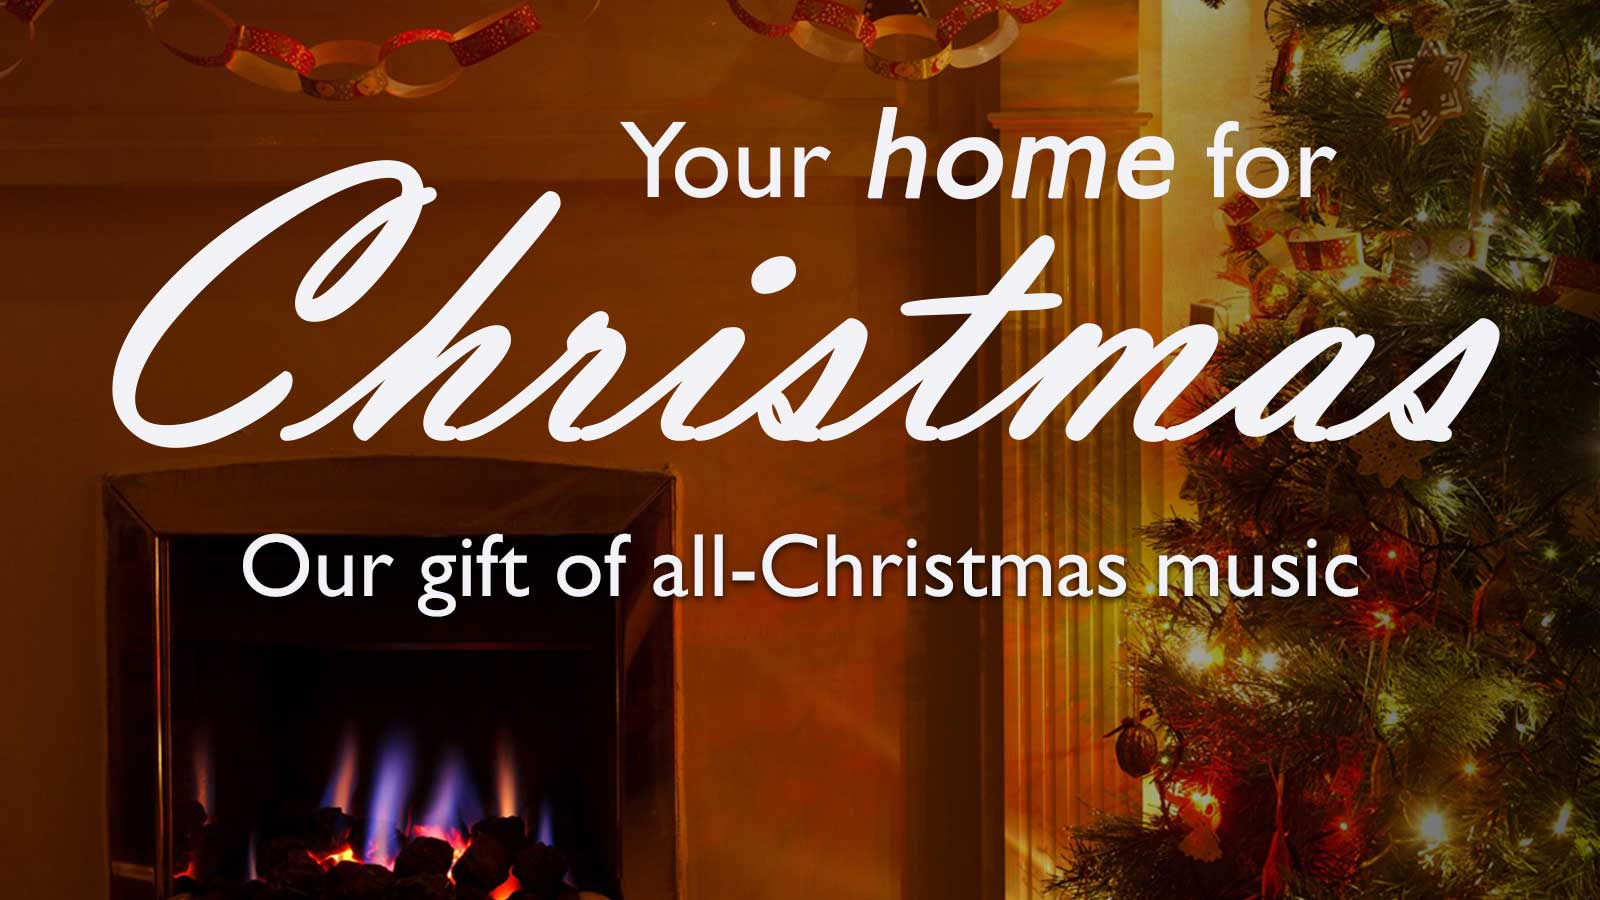 images/banners/prg1512_home-for-christmas.jpg